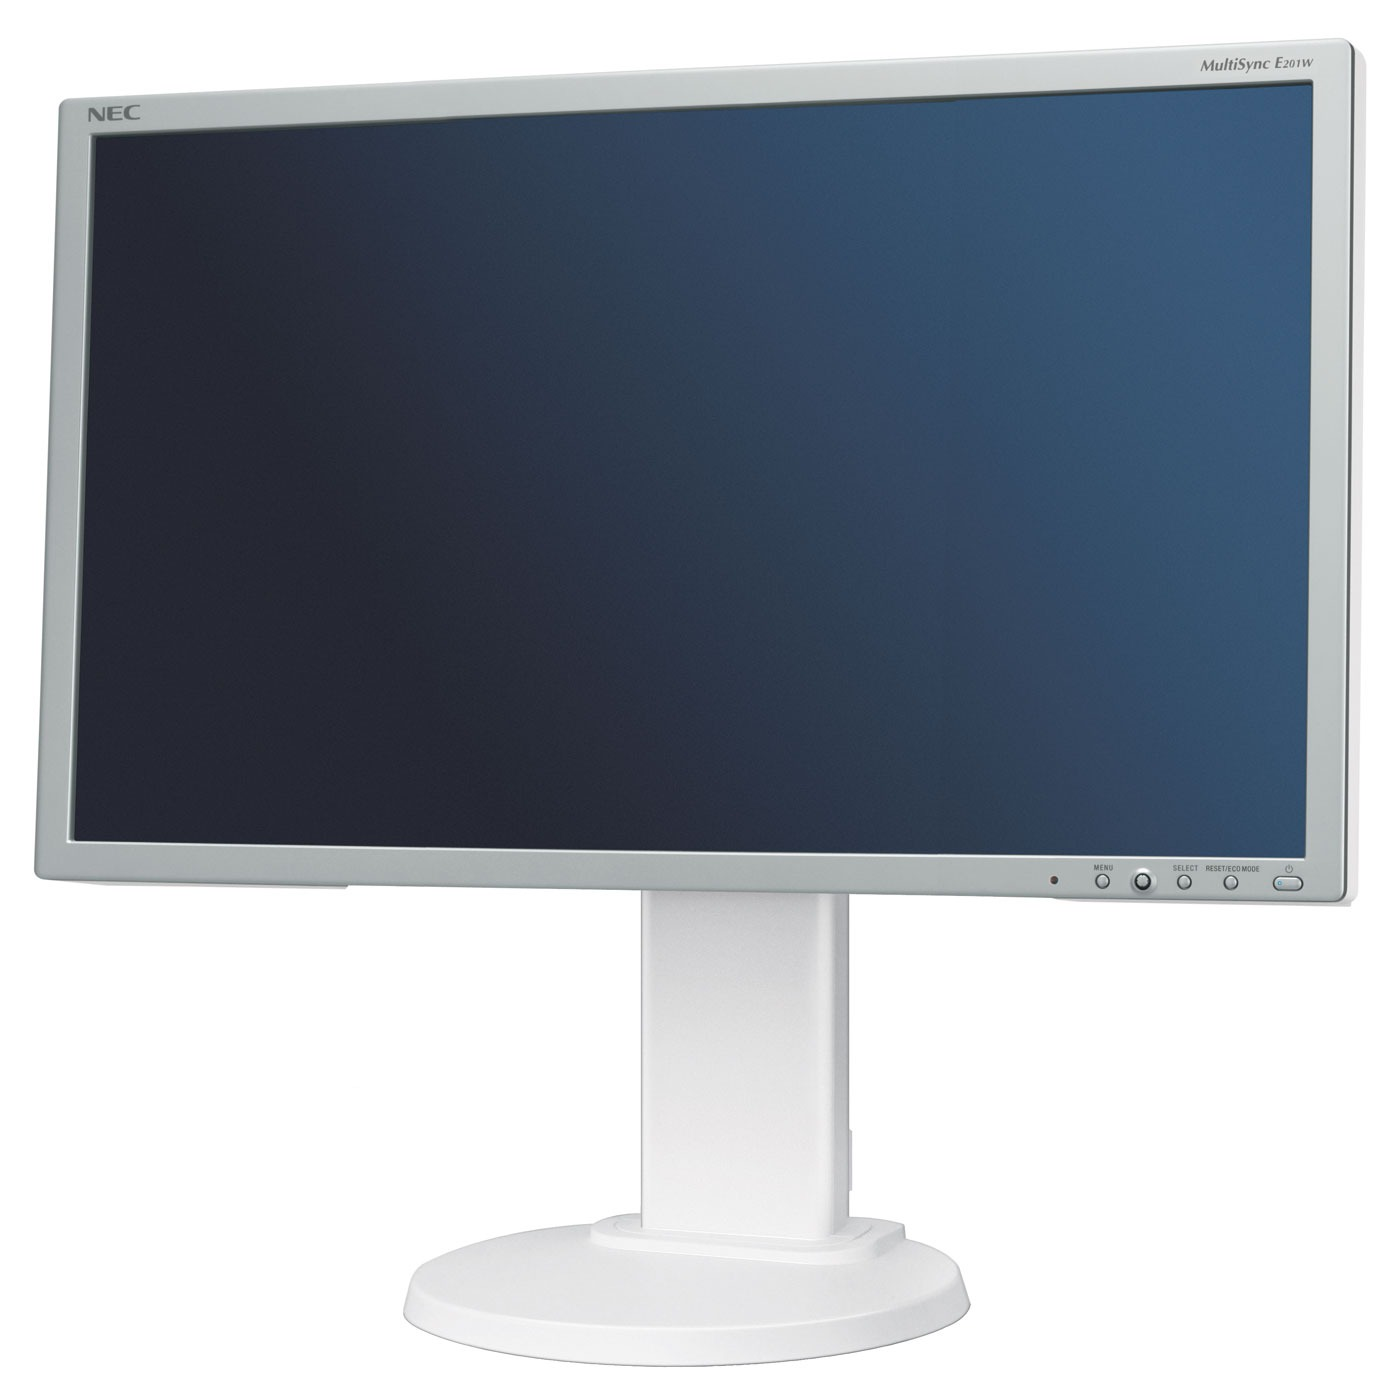 Nec 20 led multisync e201w ecran pc nec sur for Ecran photo nec